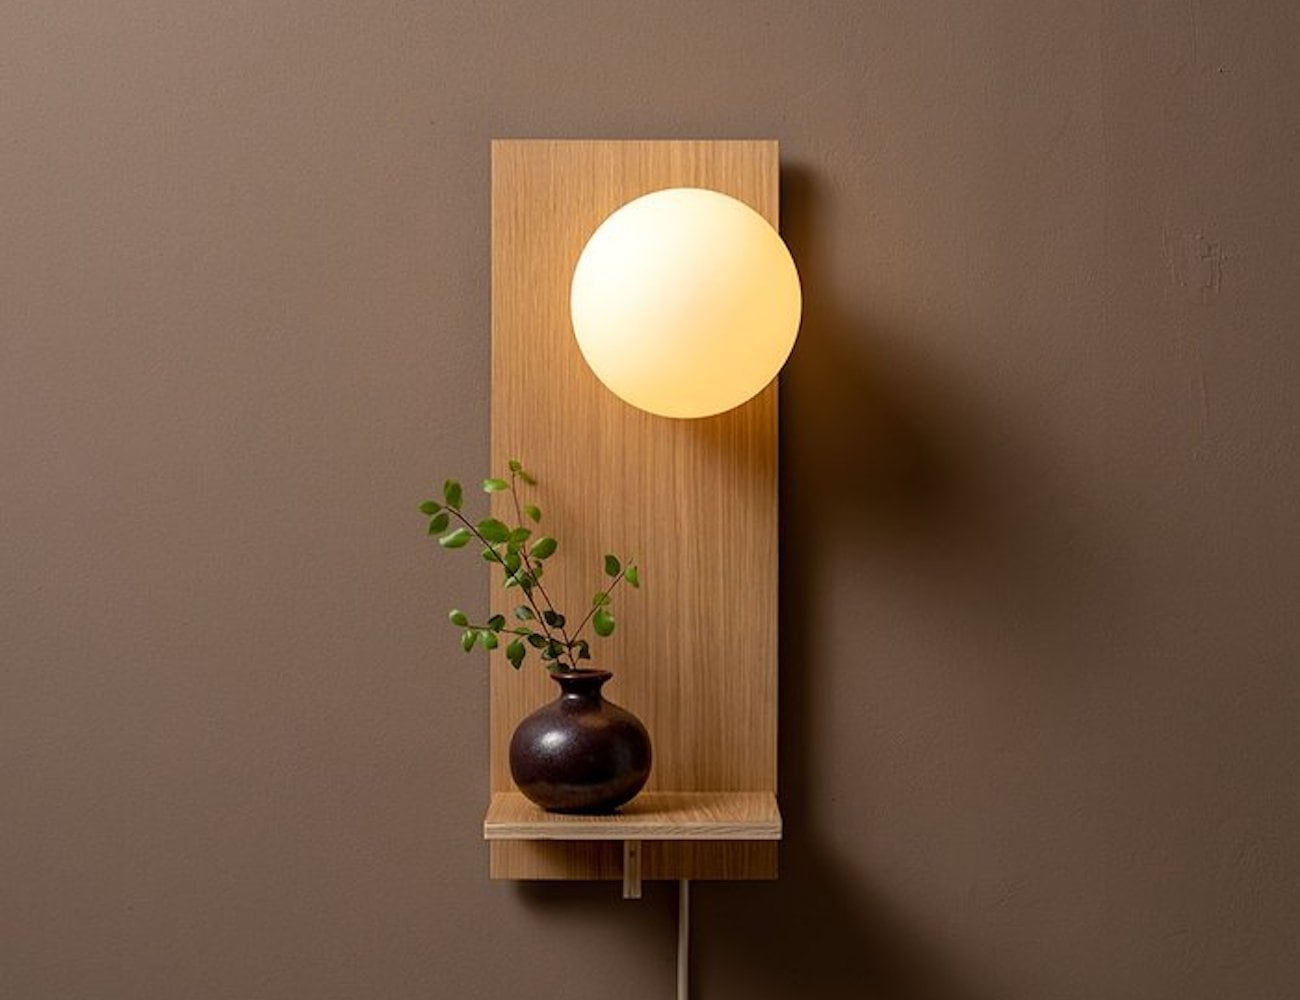 Humanhome Highlight Minimalist Shelf Wall Light is an ideal entryway lamp